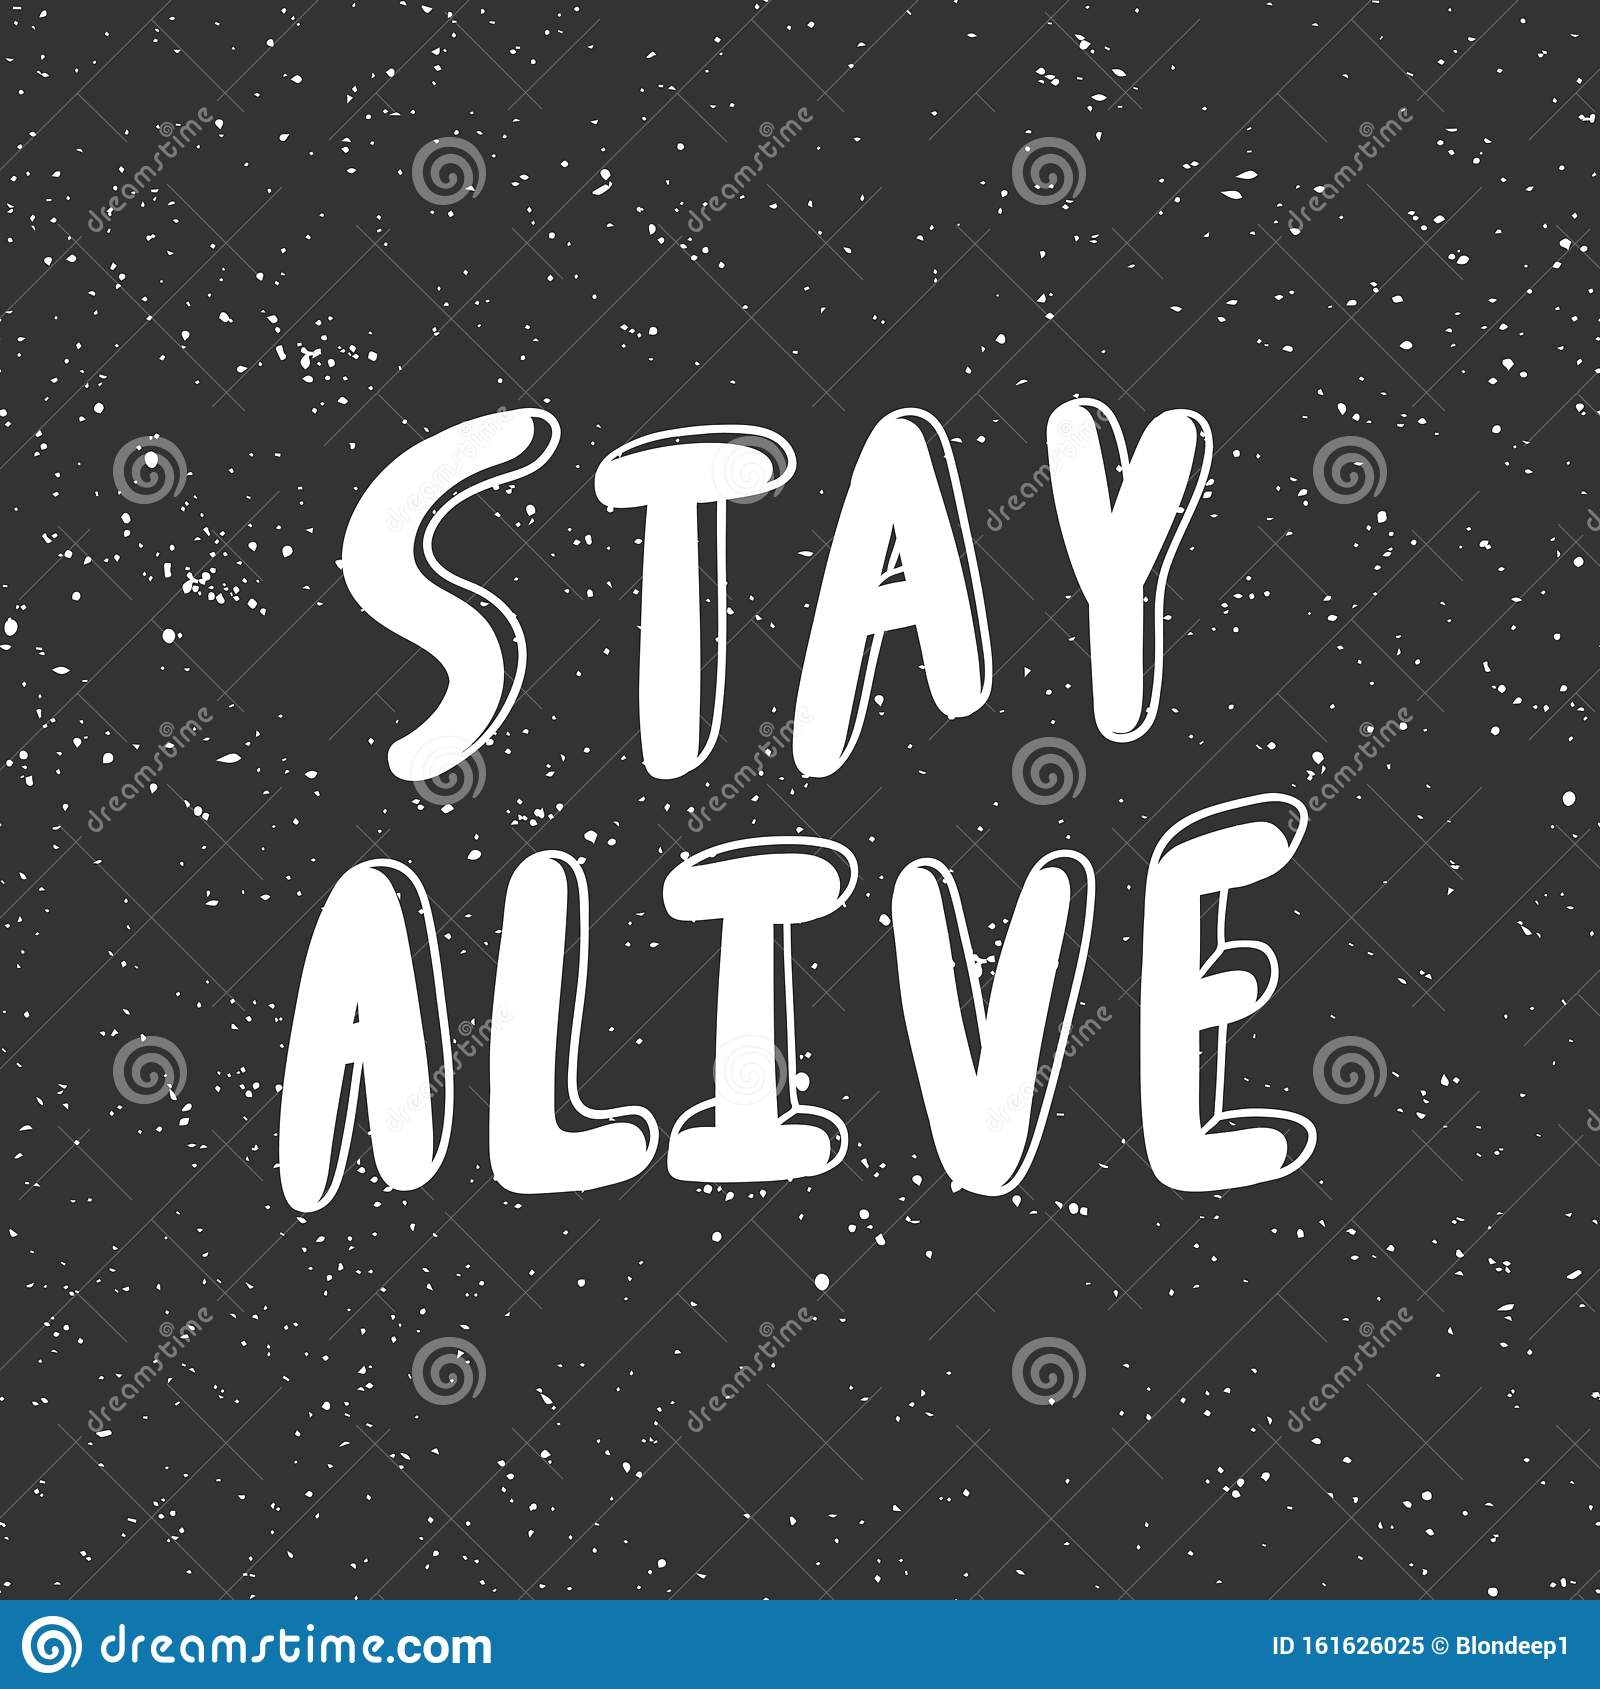 Stay Alive Vector Hand Drawn Illustration With Cartoon Lettering Good As A Sticker Video Blog Cover Social Media Stock Vector Illustration Of Hand Quotes 161626025